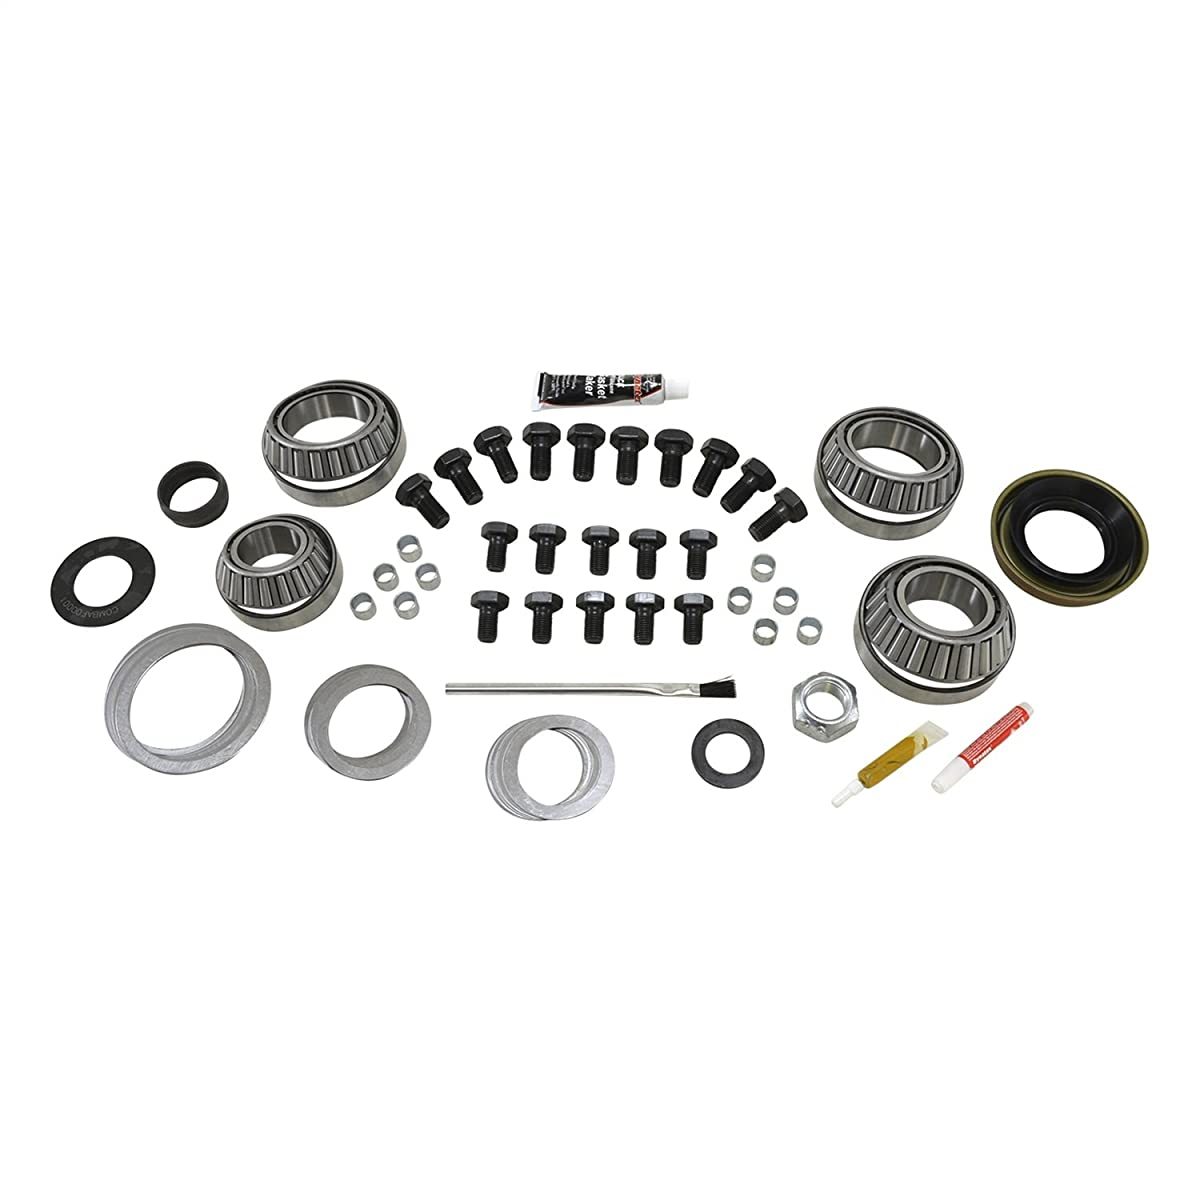 Yukon Gear & Axle (YK D44-JK-RUB) Master Overhaul Kit for Jeep JK Rubicon Dana 44 Rear Differential